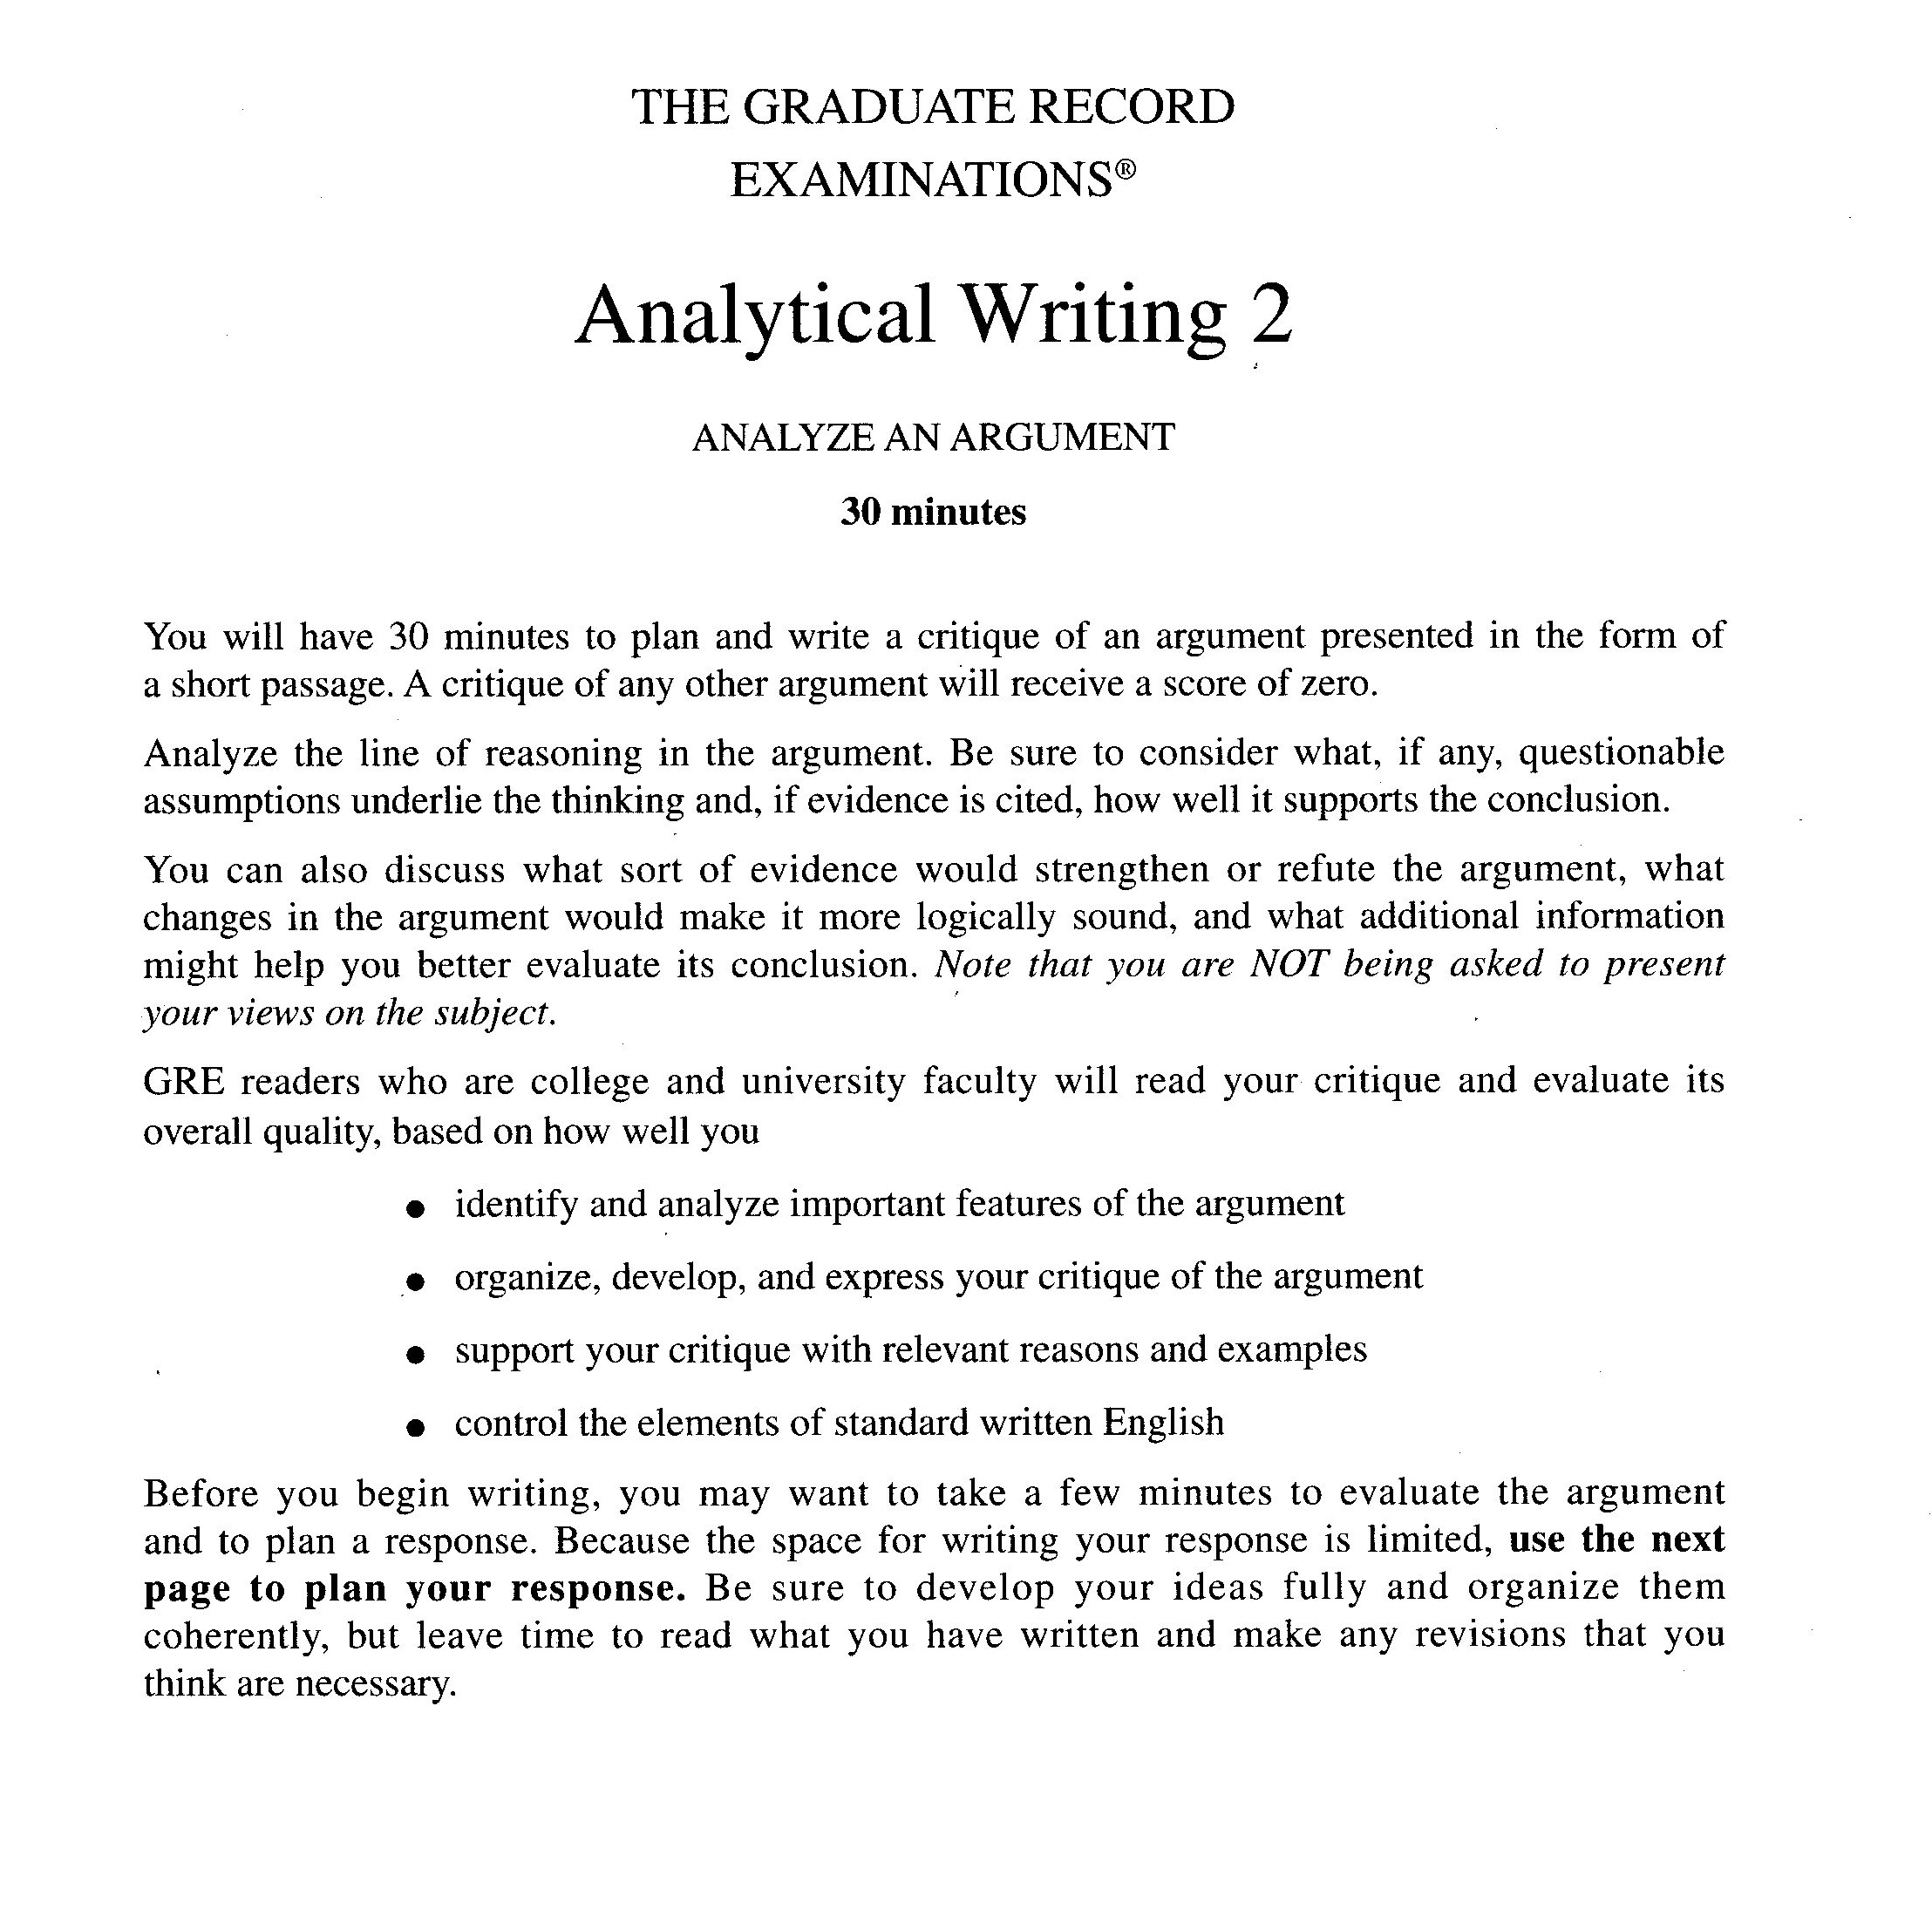 022 Analytical20writing20response20task20directions20for20gre201 Njhs Essay Conclusion Unique Full